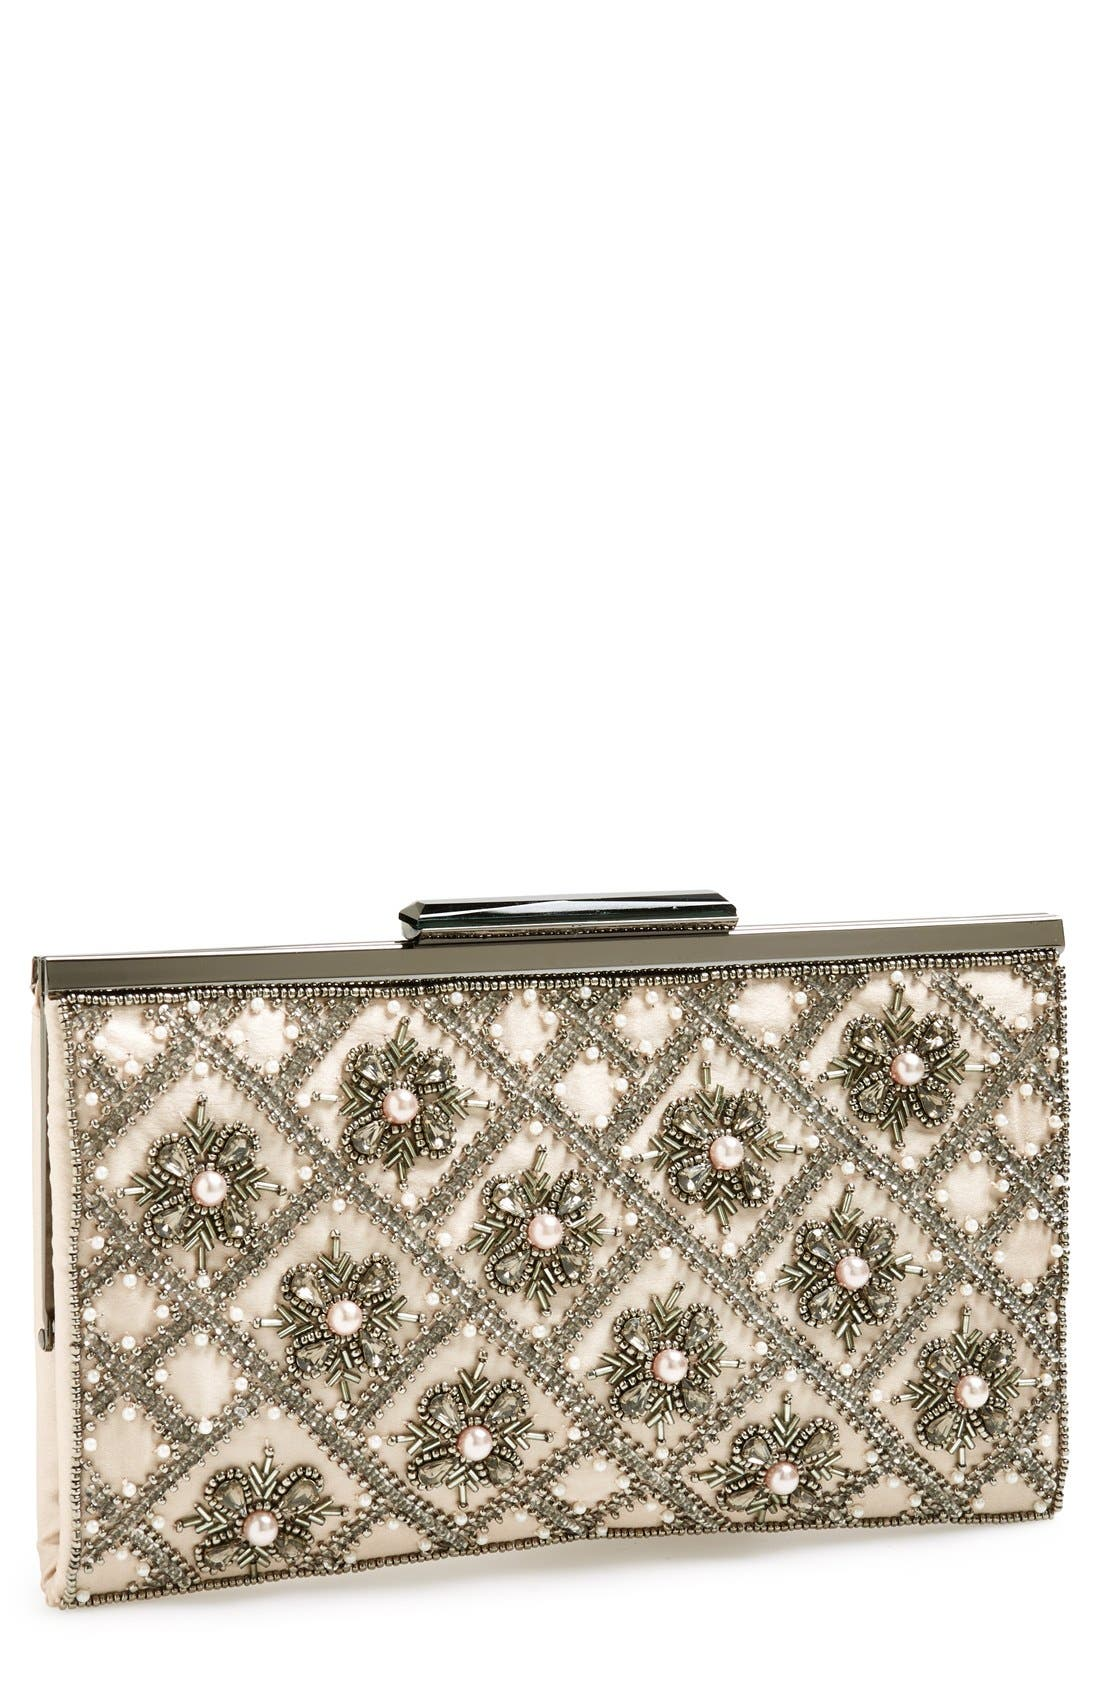 GLINT 'Topper' Embellished Frame Clutch, Main, color, 950